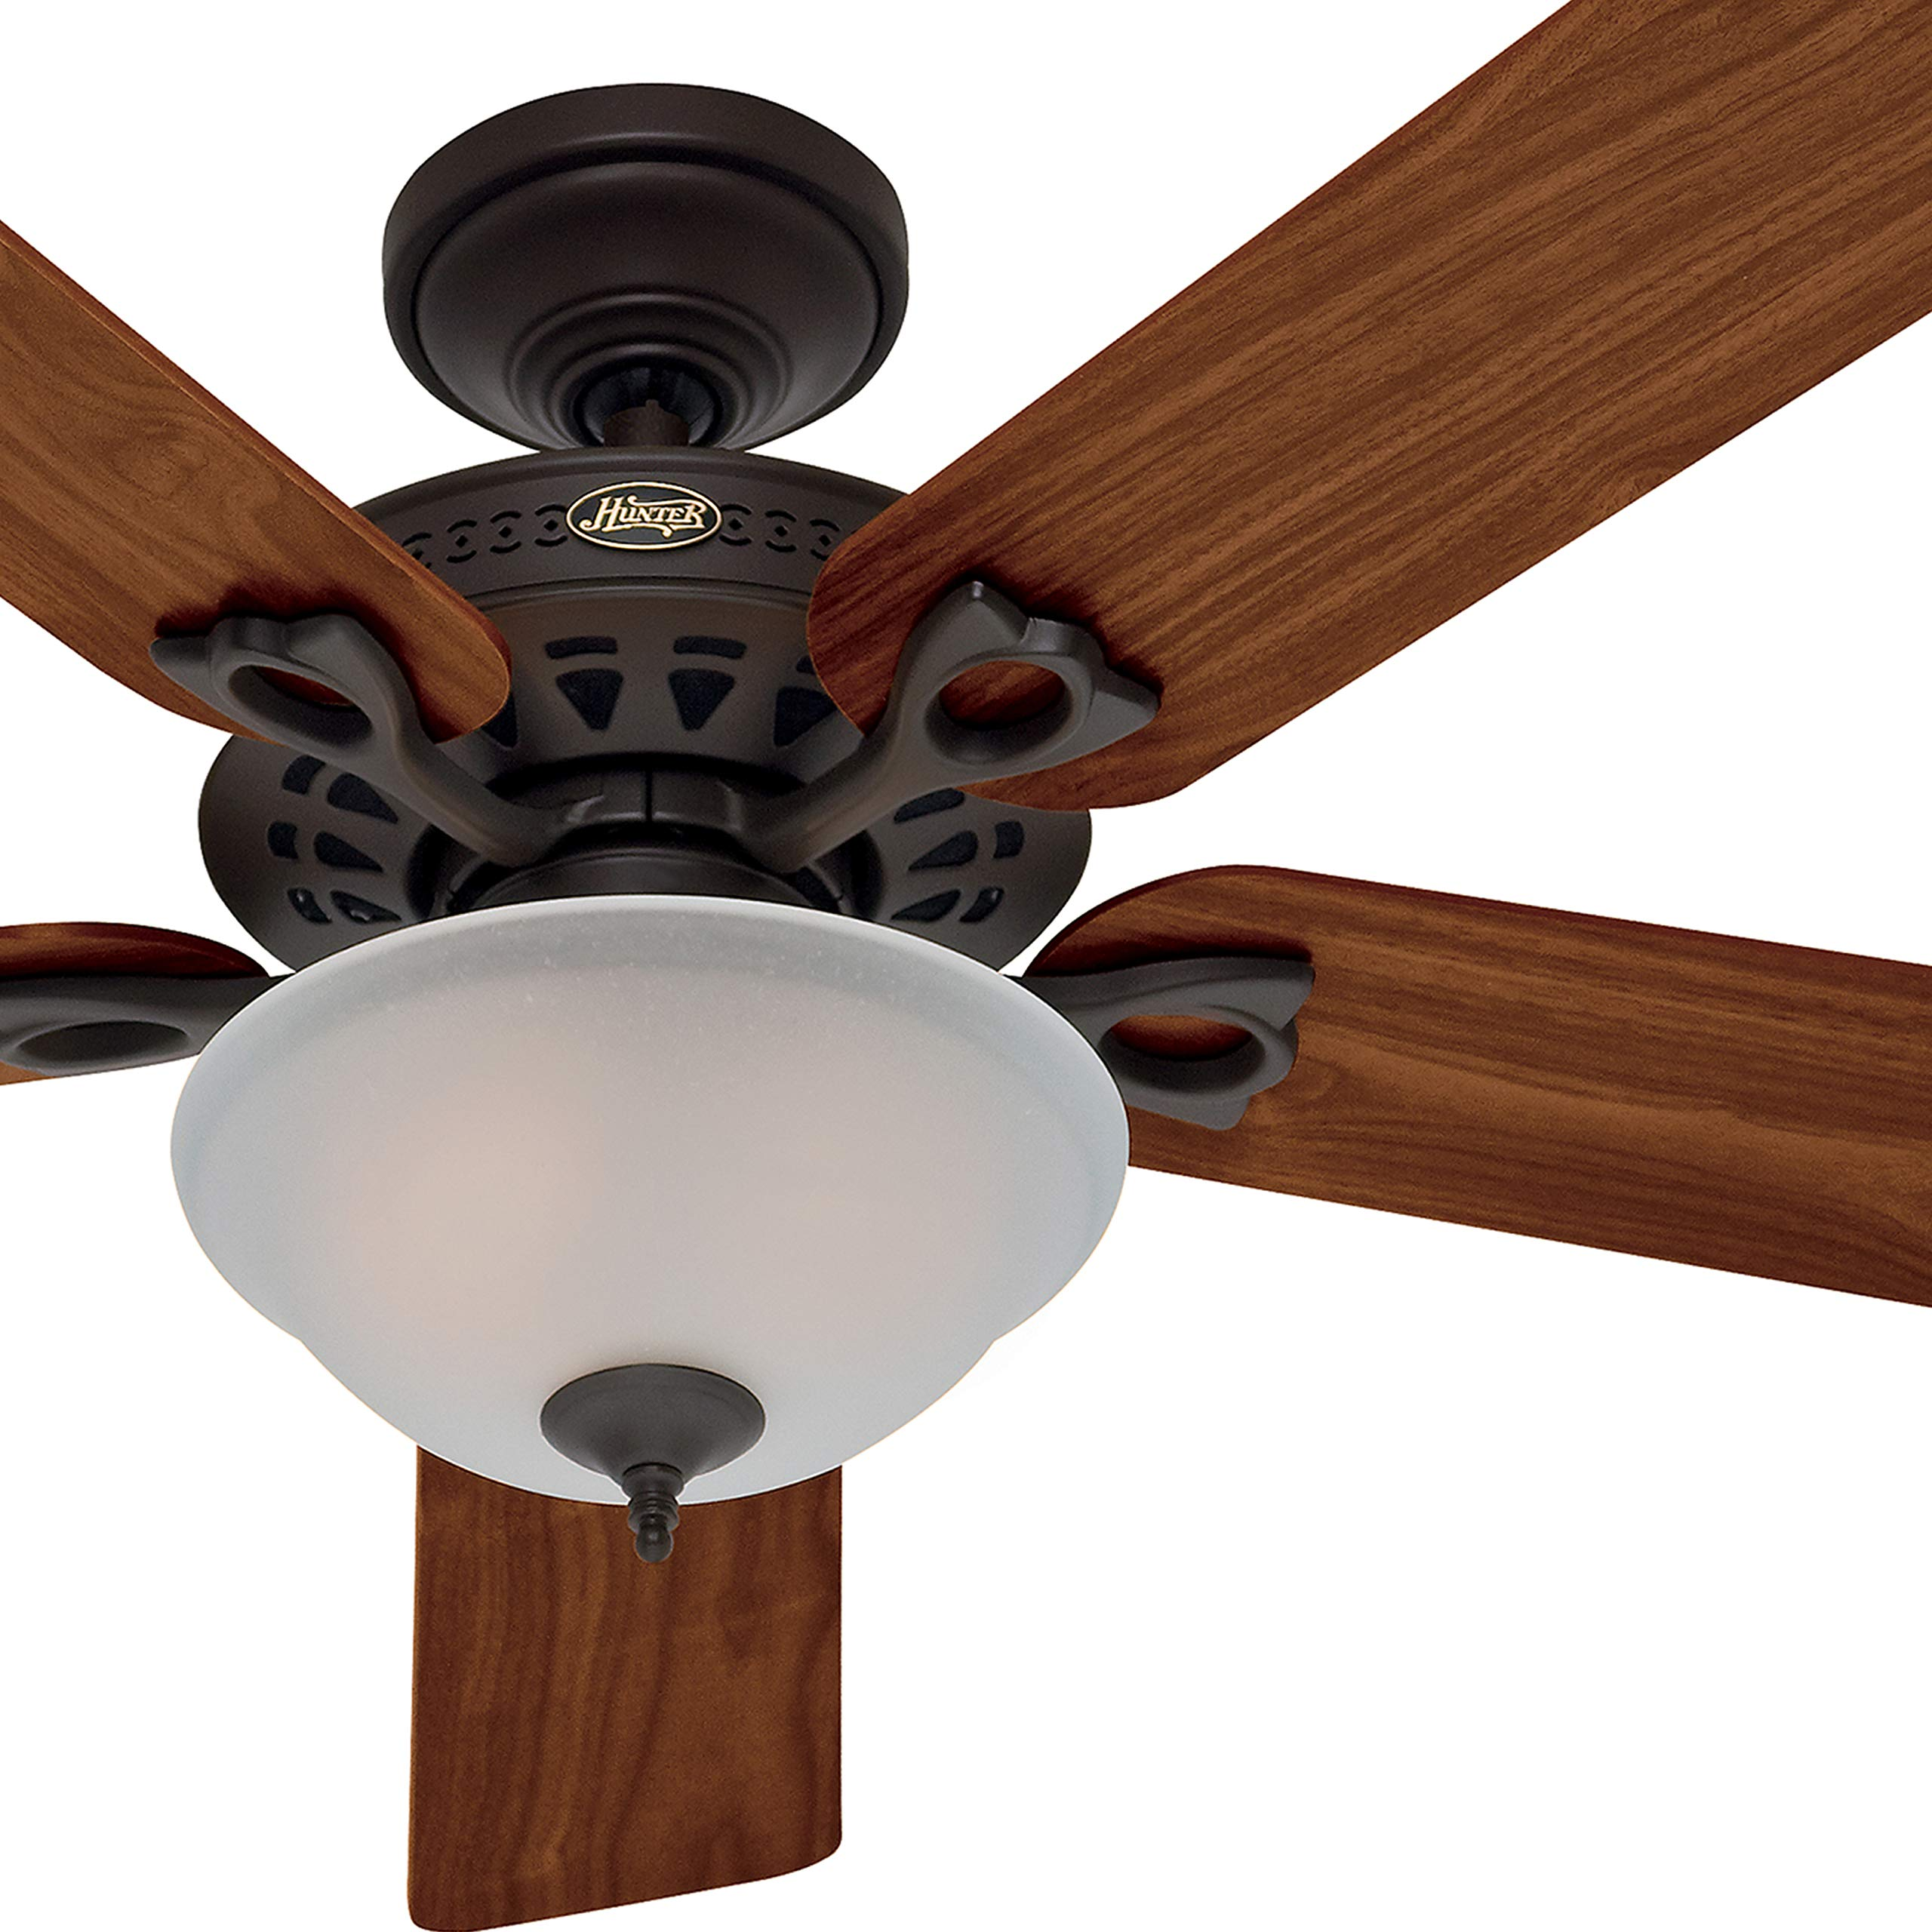 Hunter Fan 52'' Traditional Ceiling Fan in New Bronze with a Frosted Glass Light Kit, 5 Blade (Certified Refurbished) by Hunter Fan Company